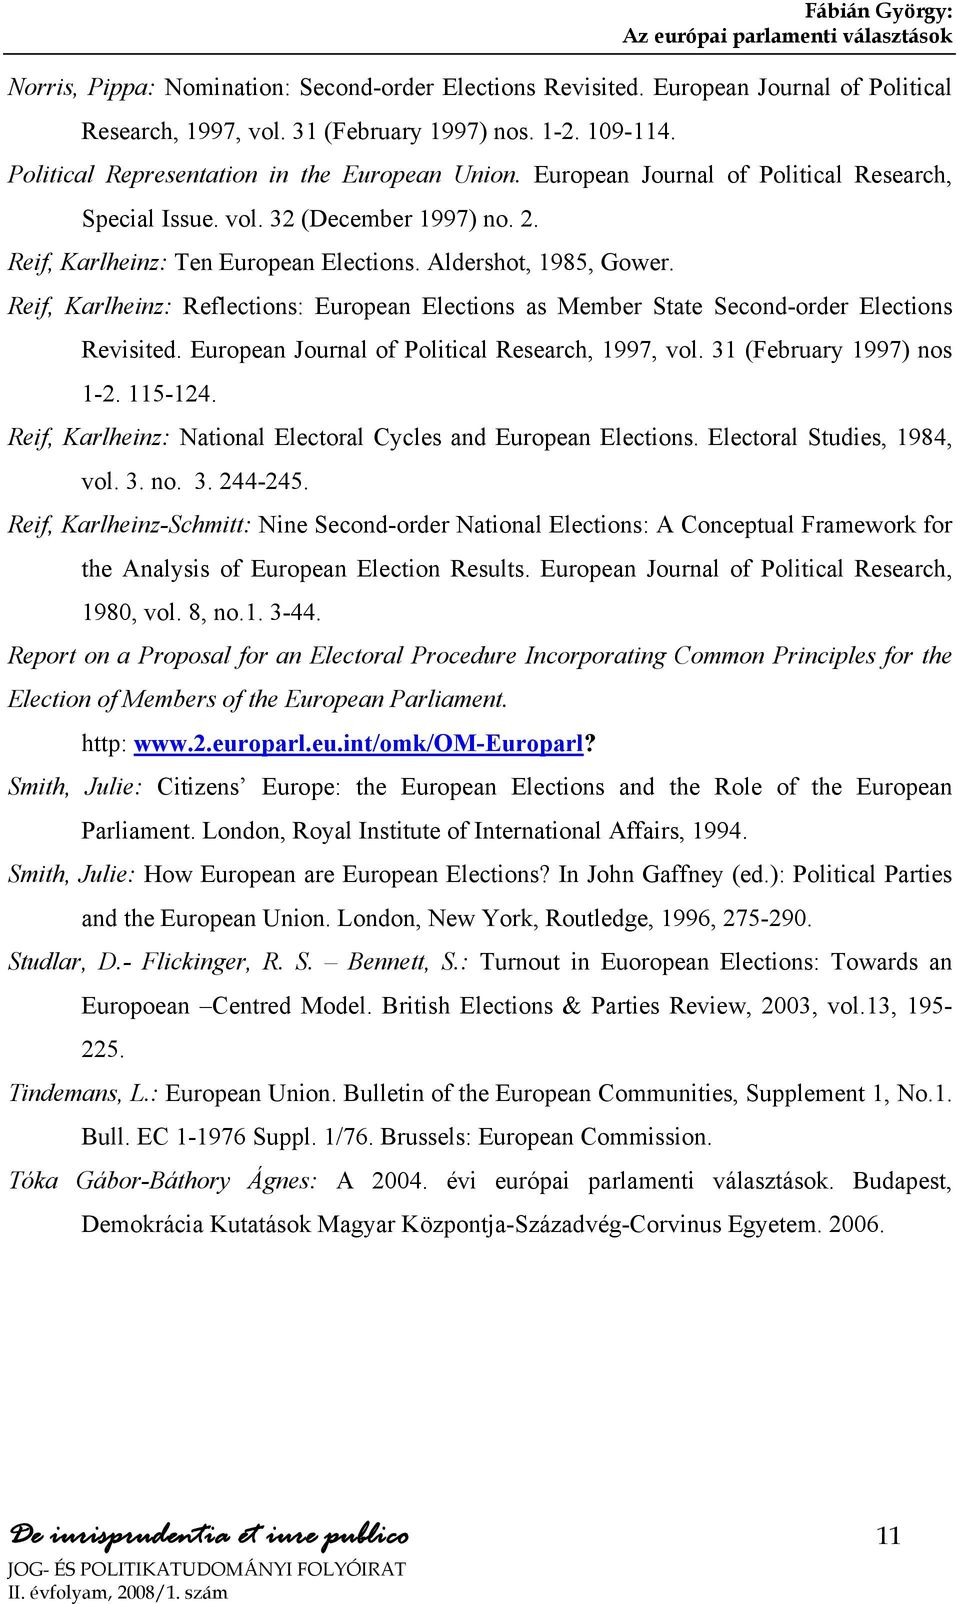 Reif, Karlheinz: Reflections: European Elections as Member State Second-order Elections Revisited. European Journal of Political Research, 1997, vol. 31 (February 1997) nos 1-2. 115-124.